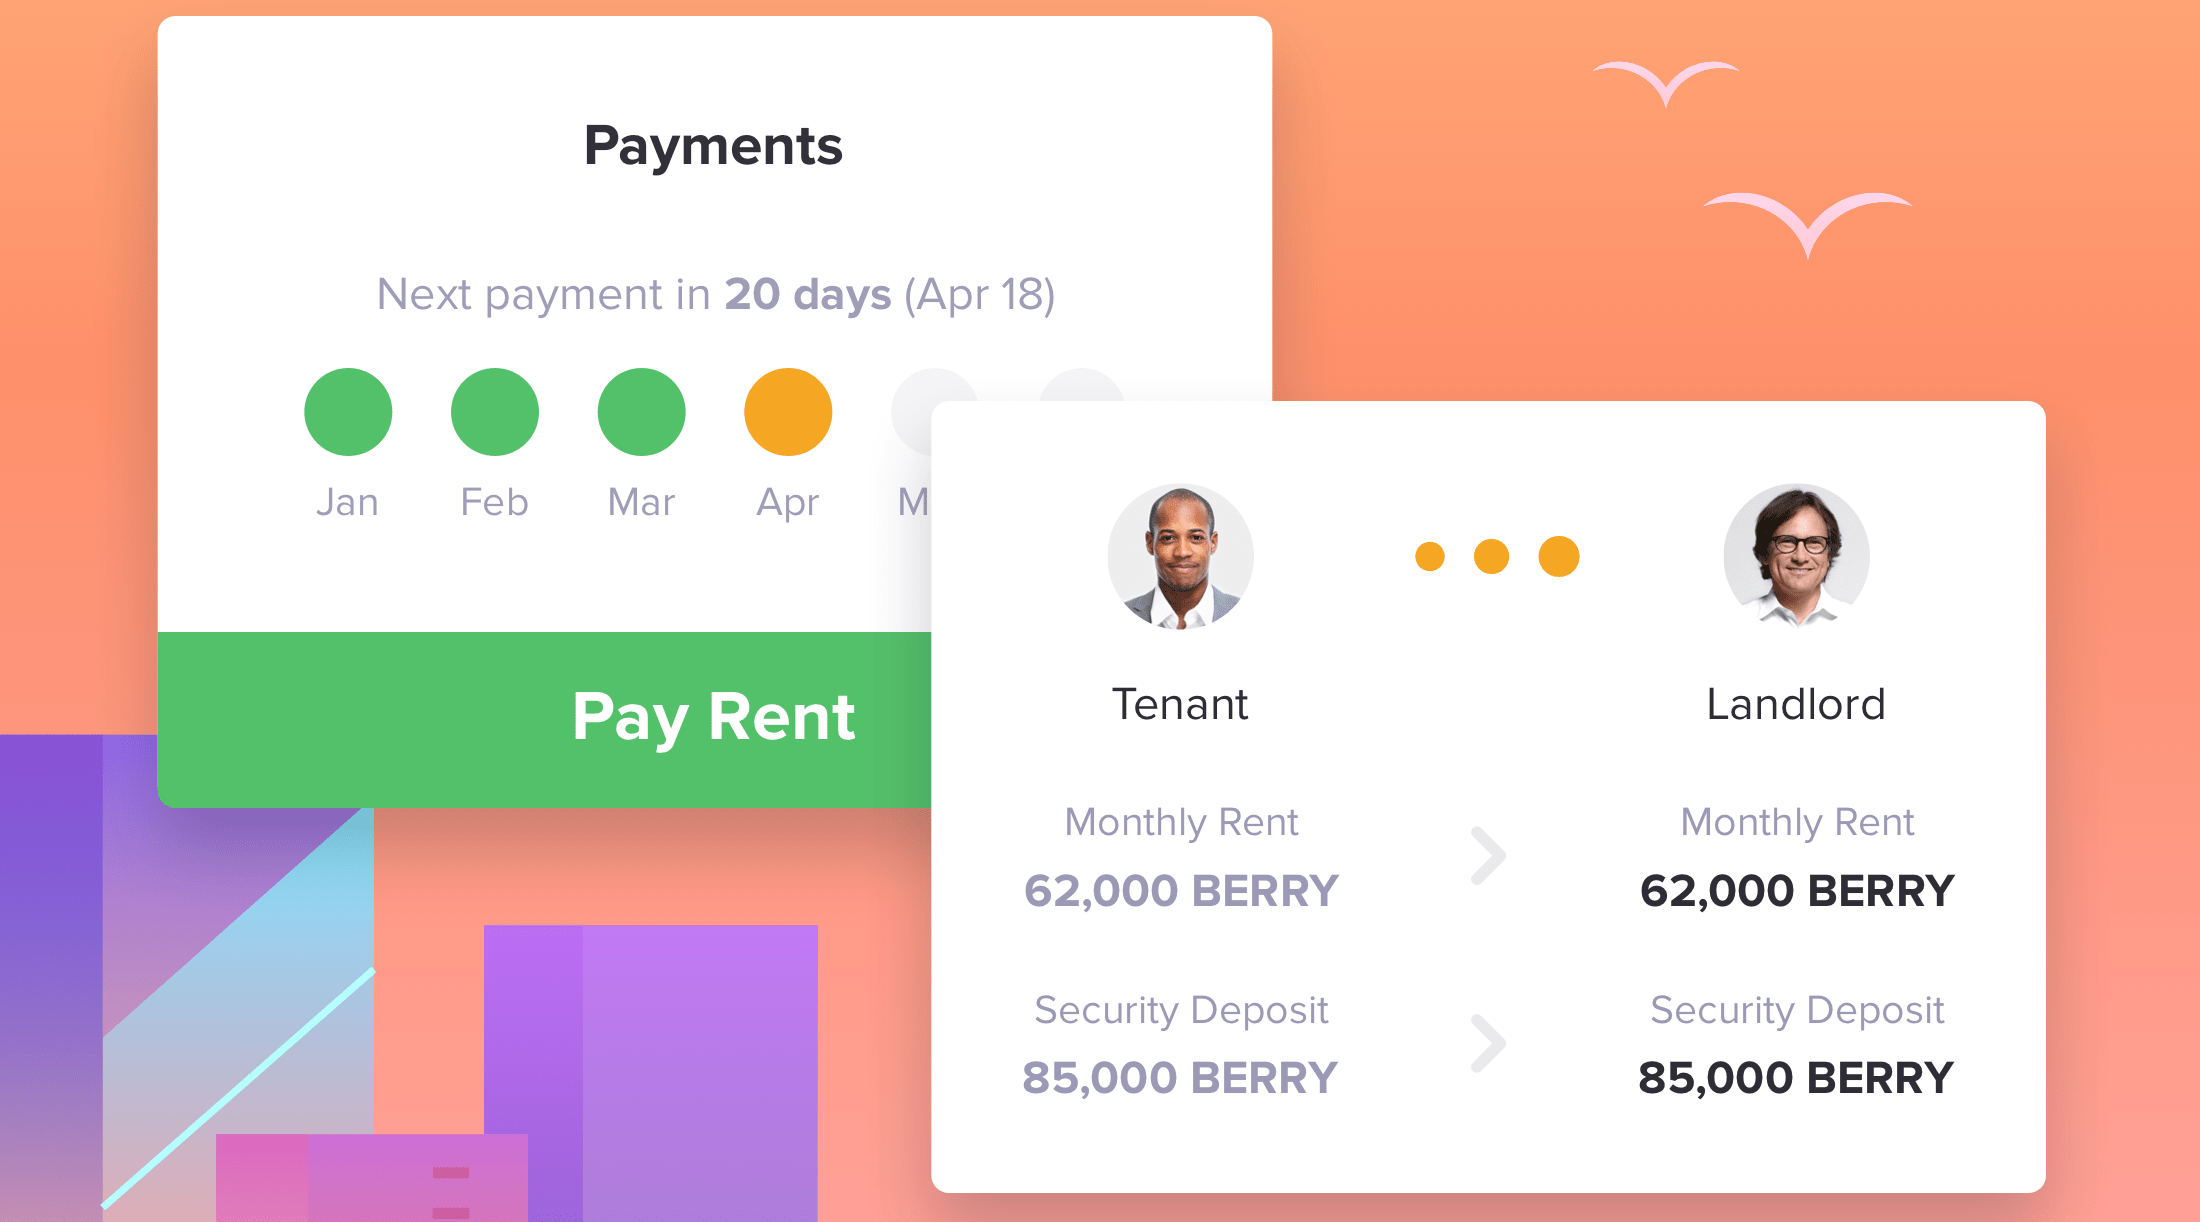 Rent payments in BERRY